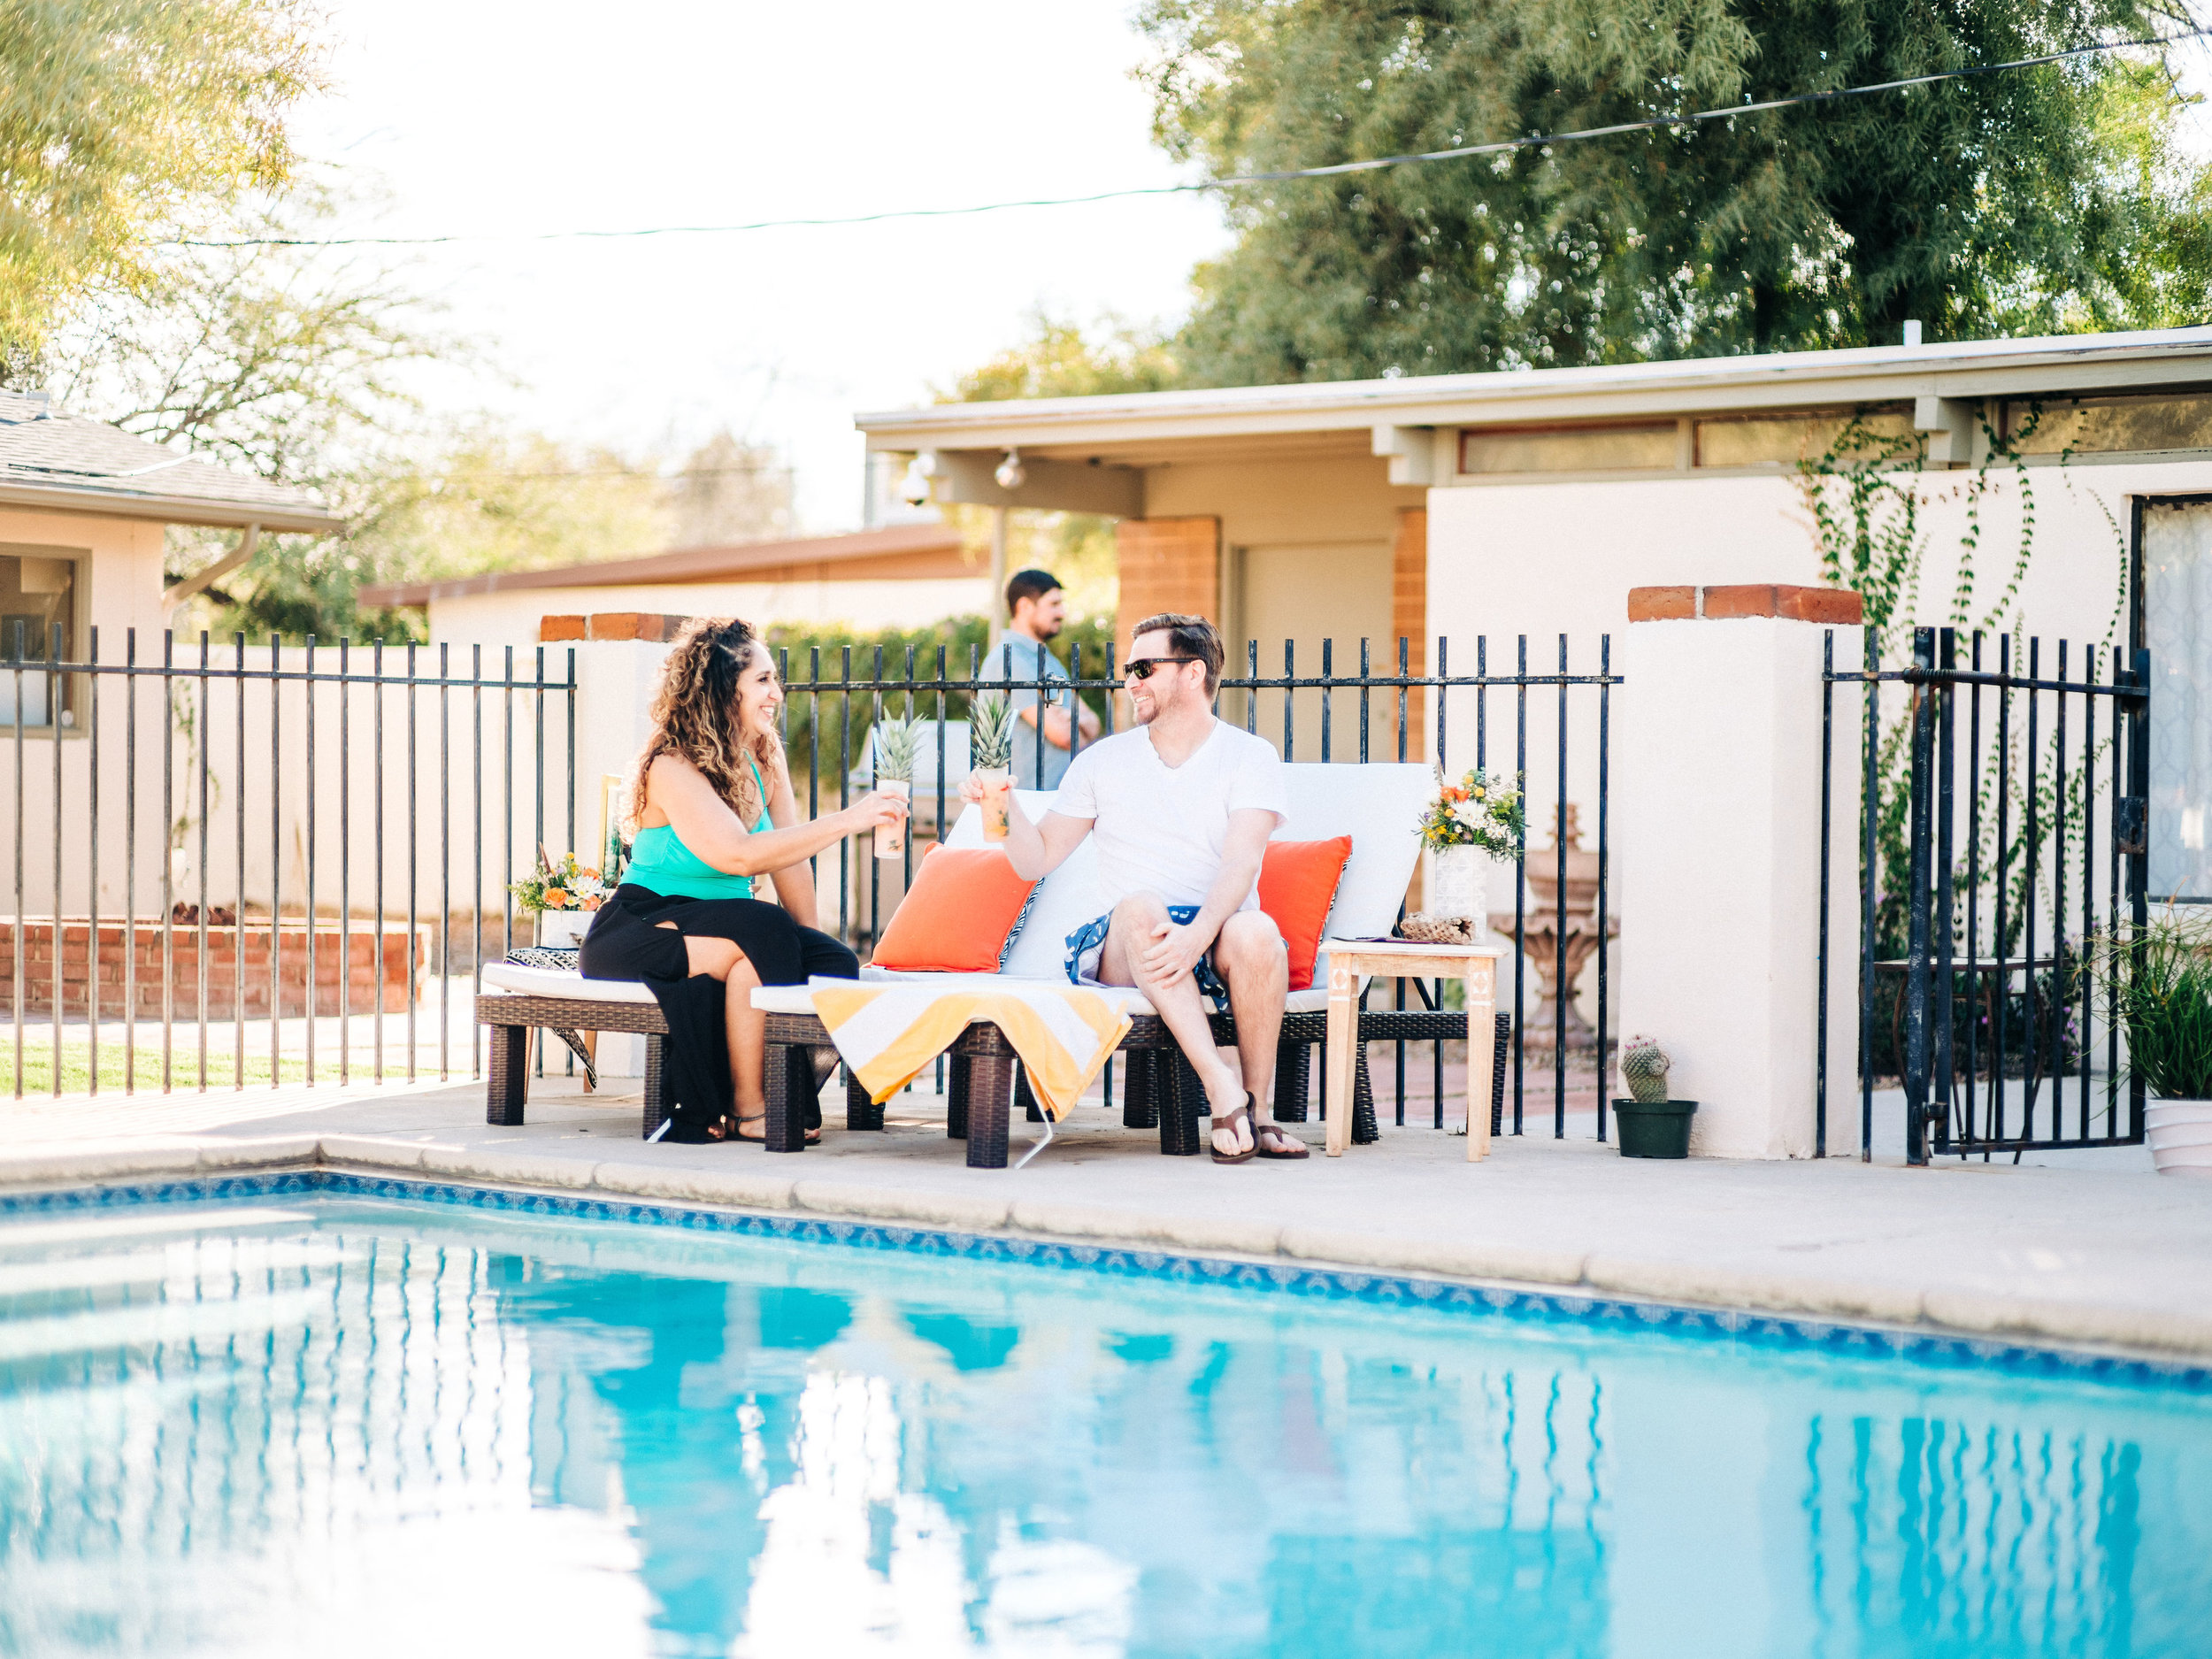 Andy-Shepard-Photography-Tucson-Pool-Party-48.jpg